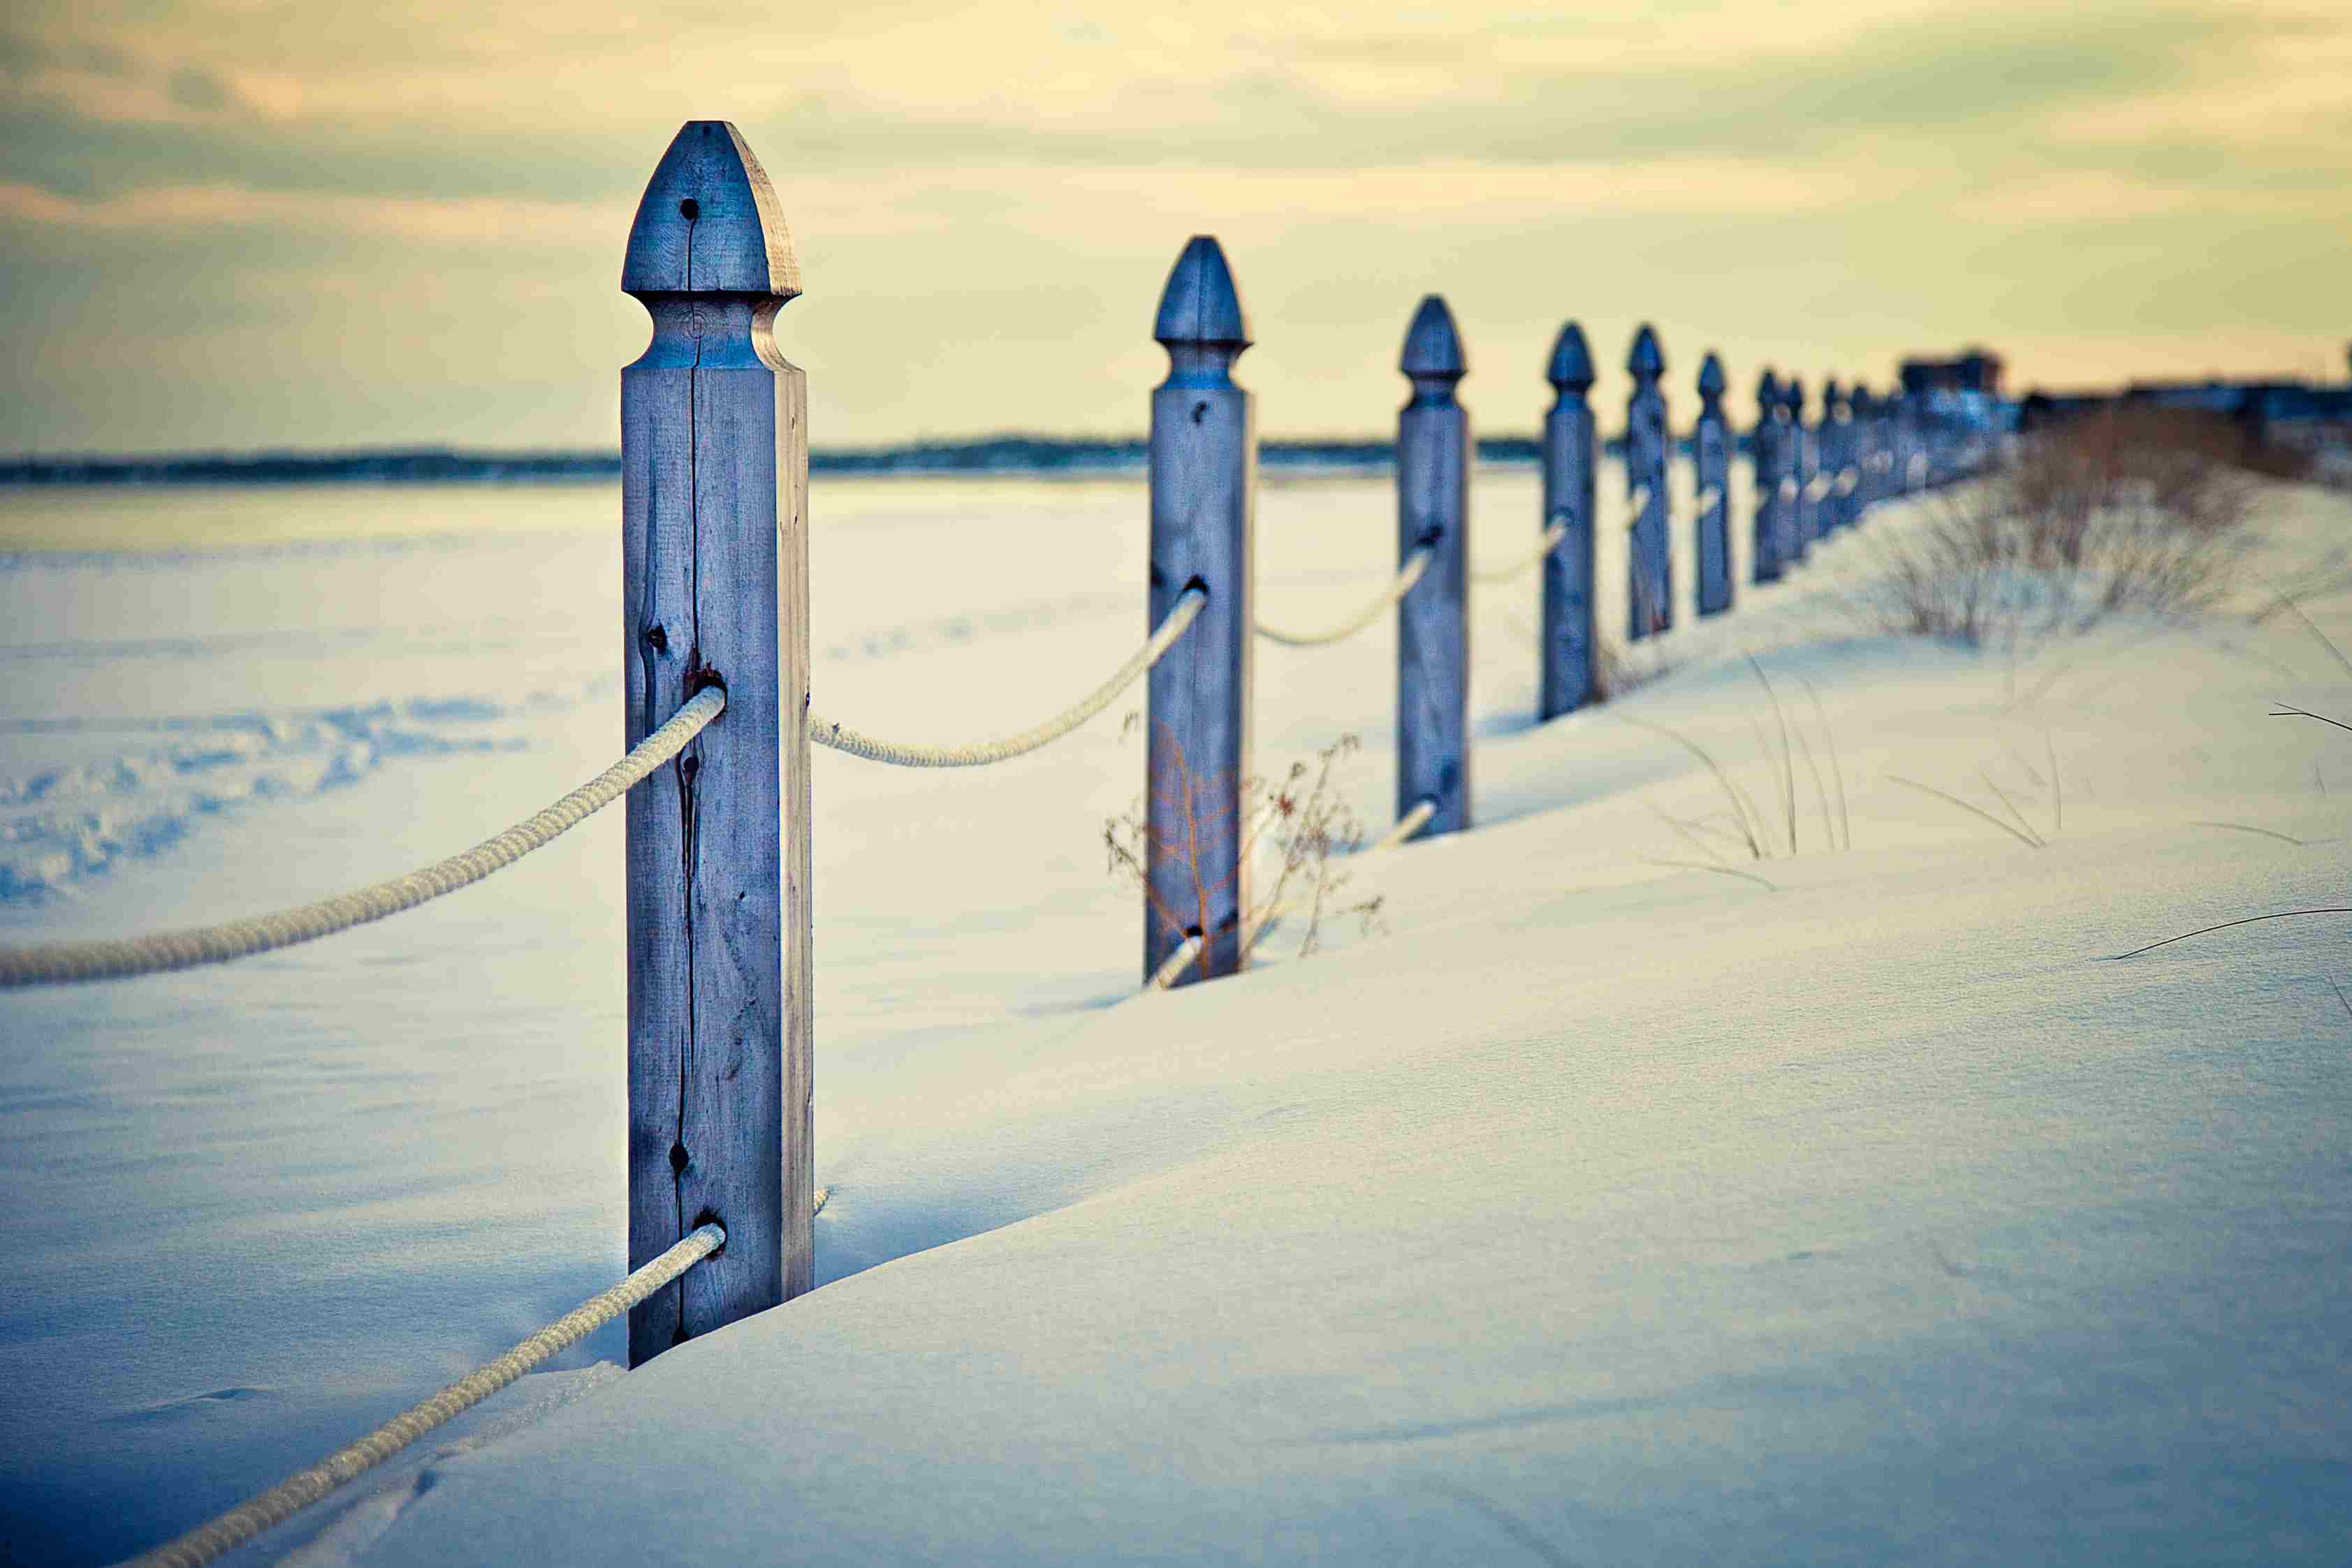 Snowy winter beach of Old Orchard Beach with wooden post fence running diagonally across landscape